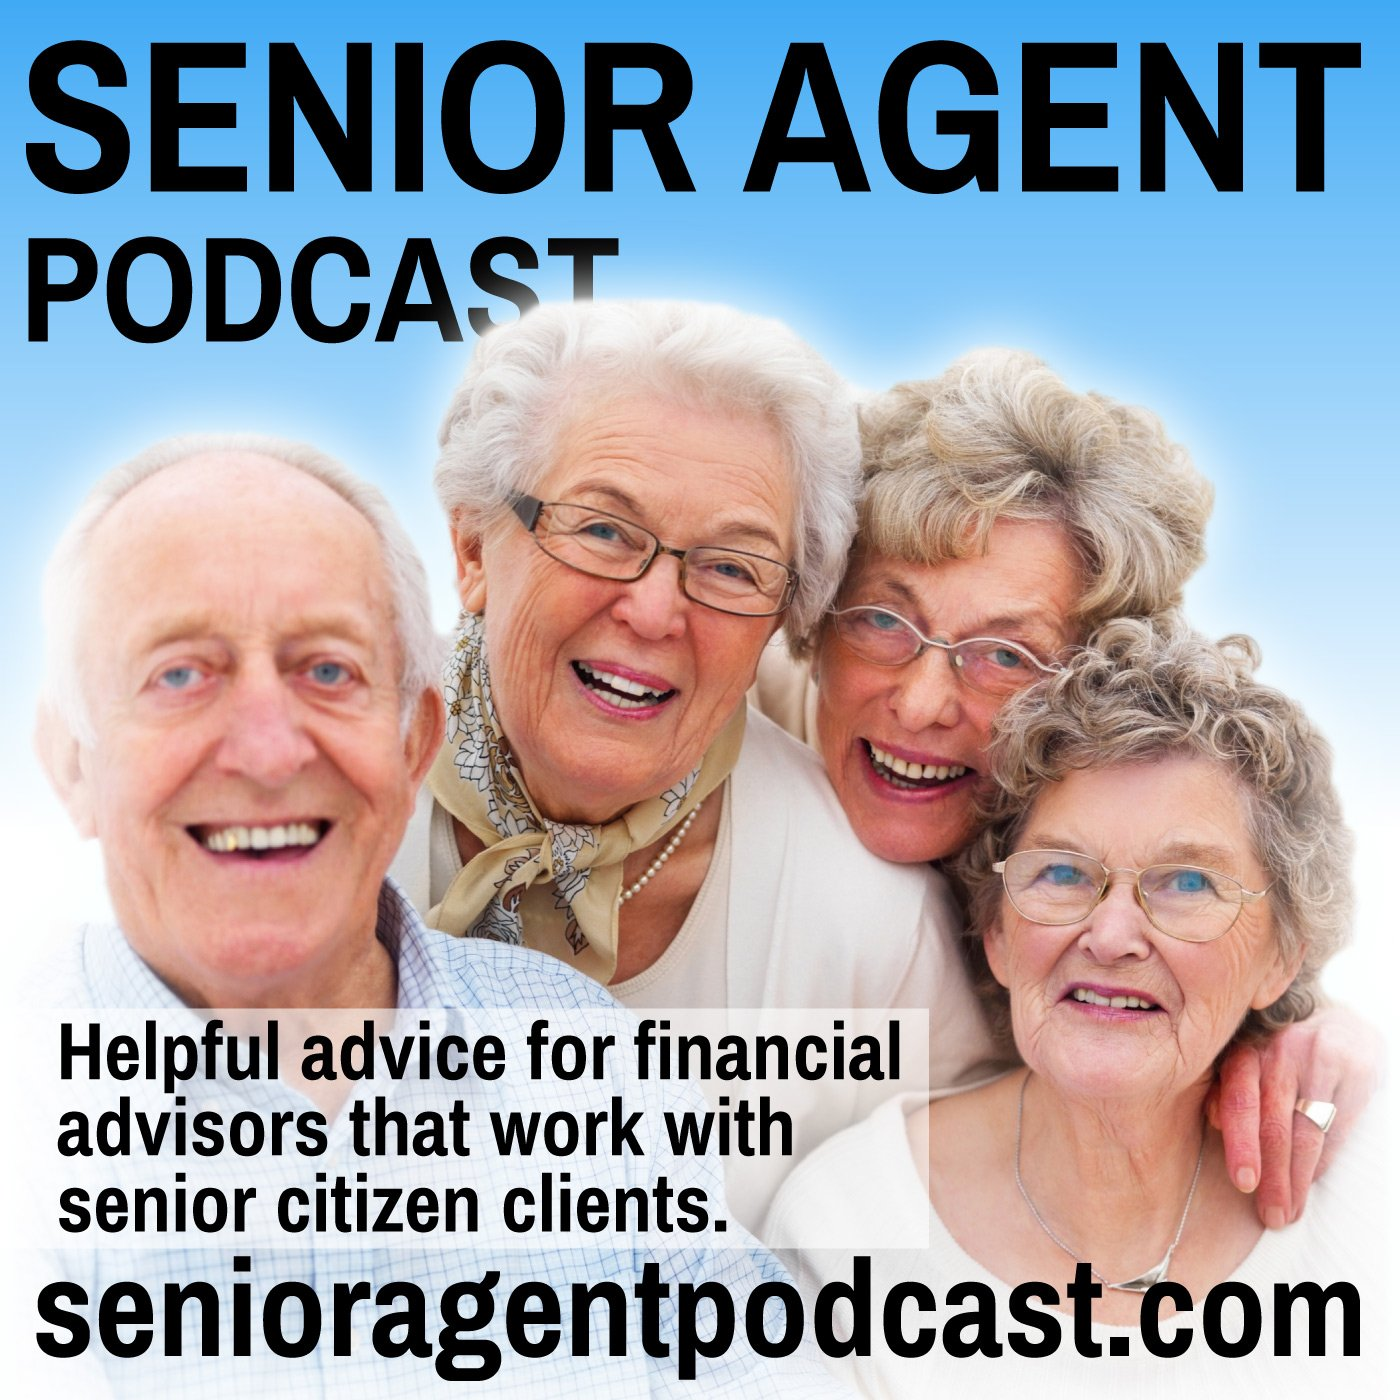 Senior Agent Podcast